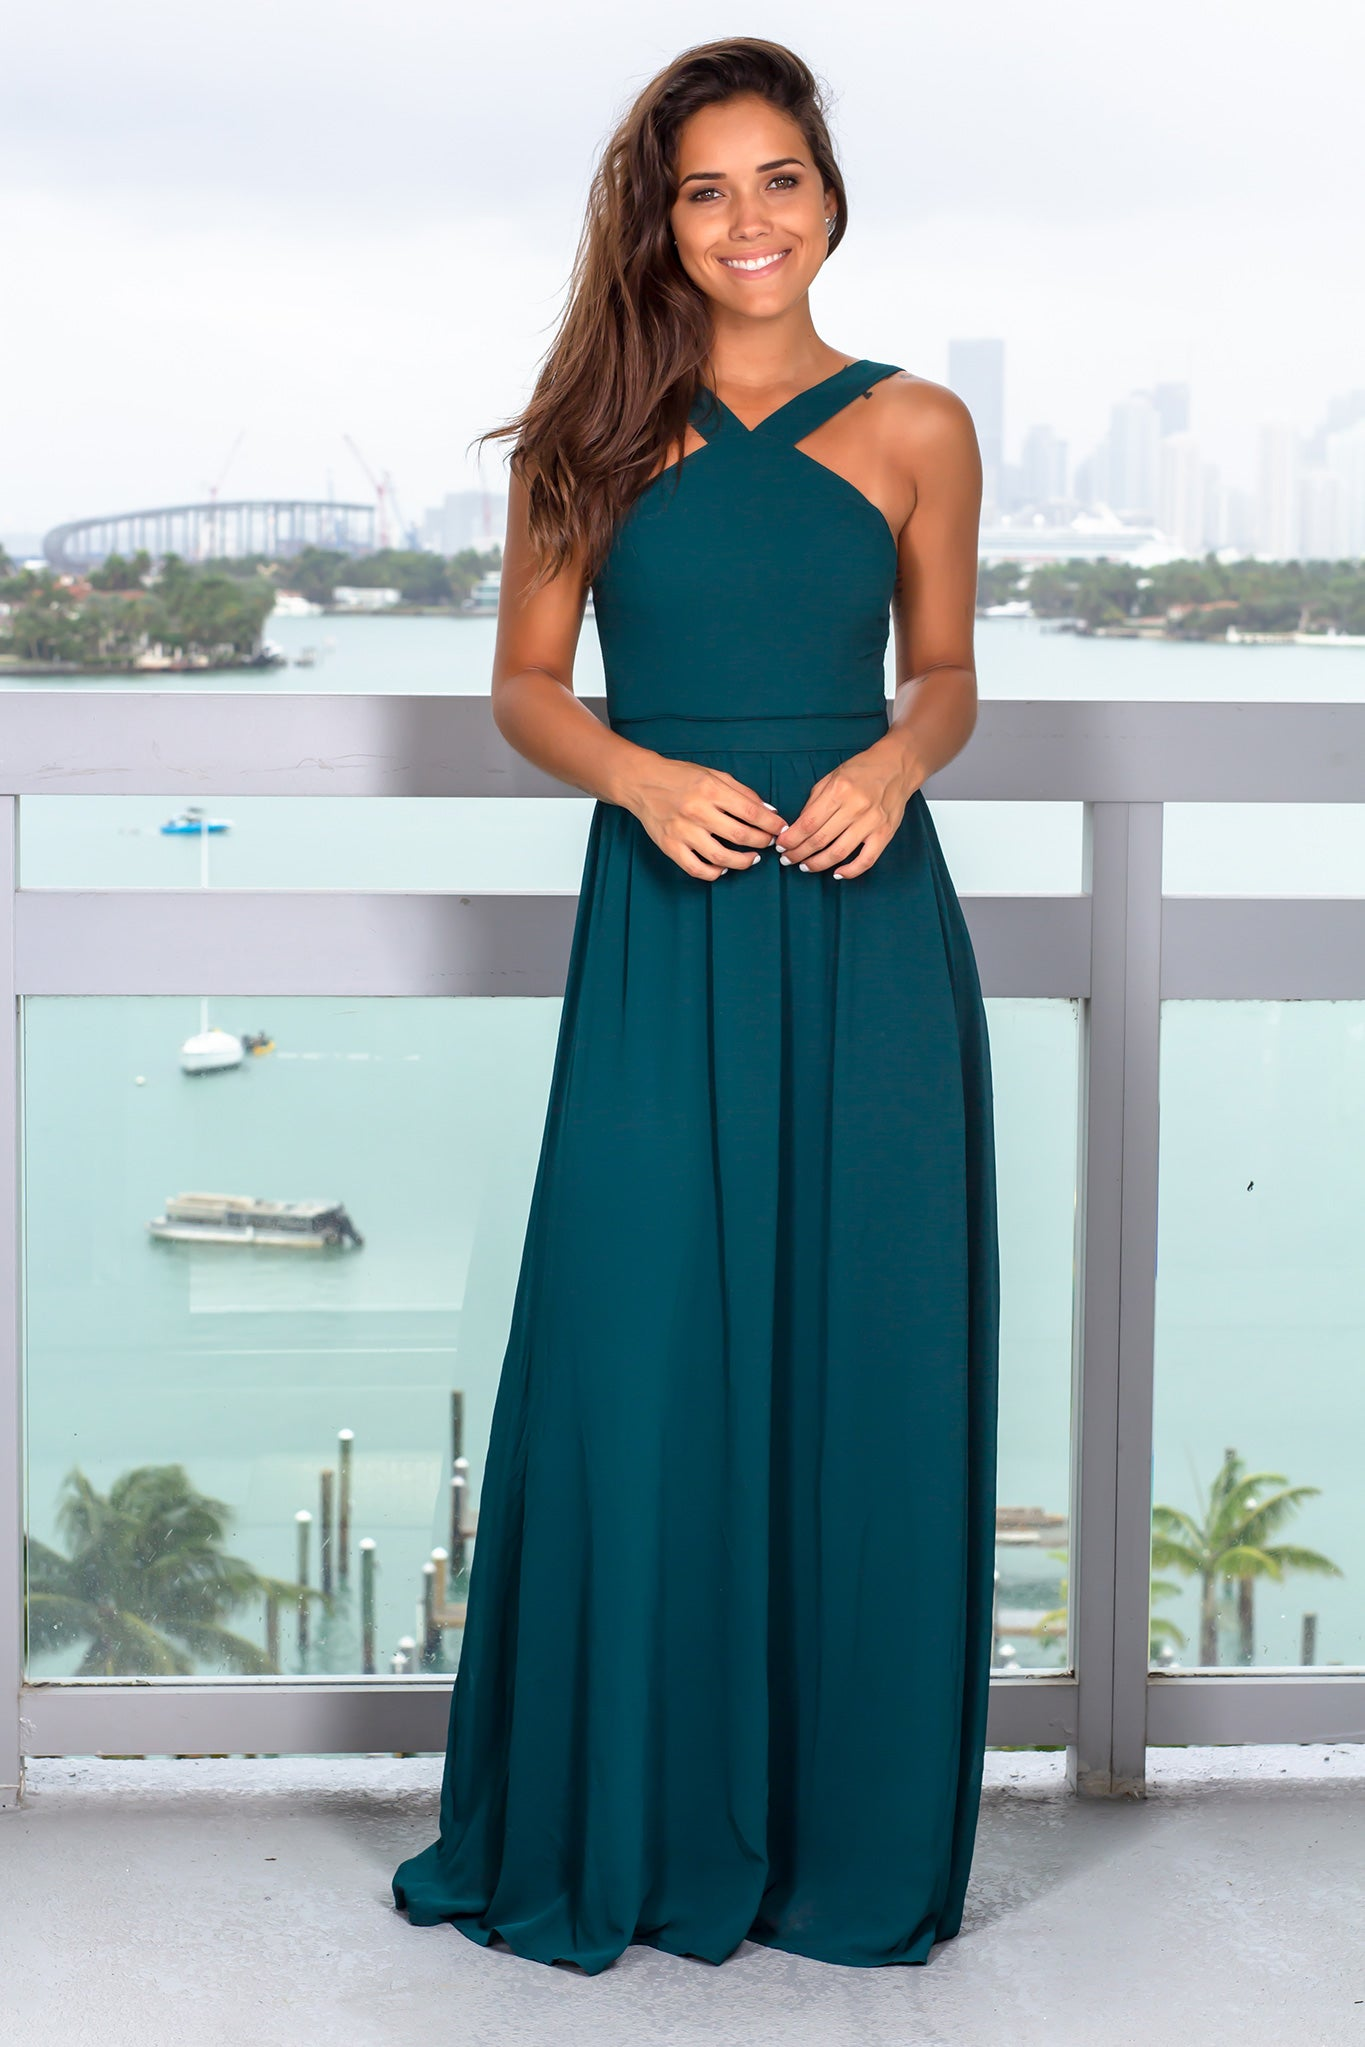 Hunter Green Halter Neck Maxi Dress with Open Back